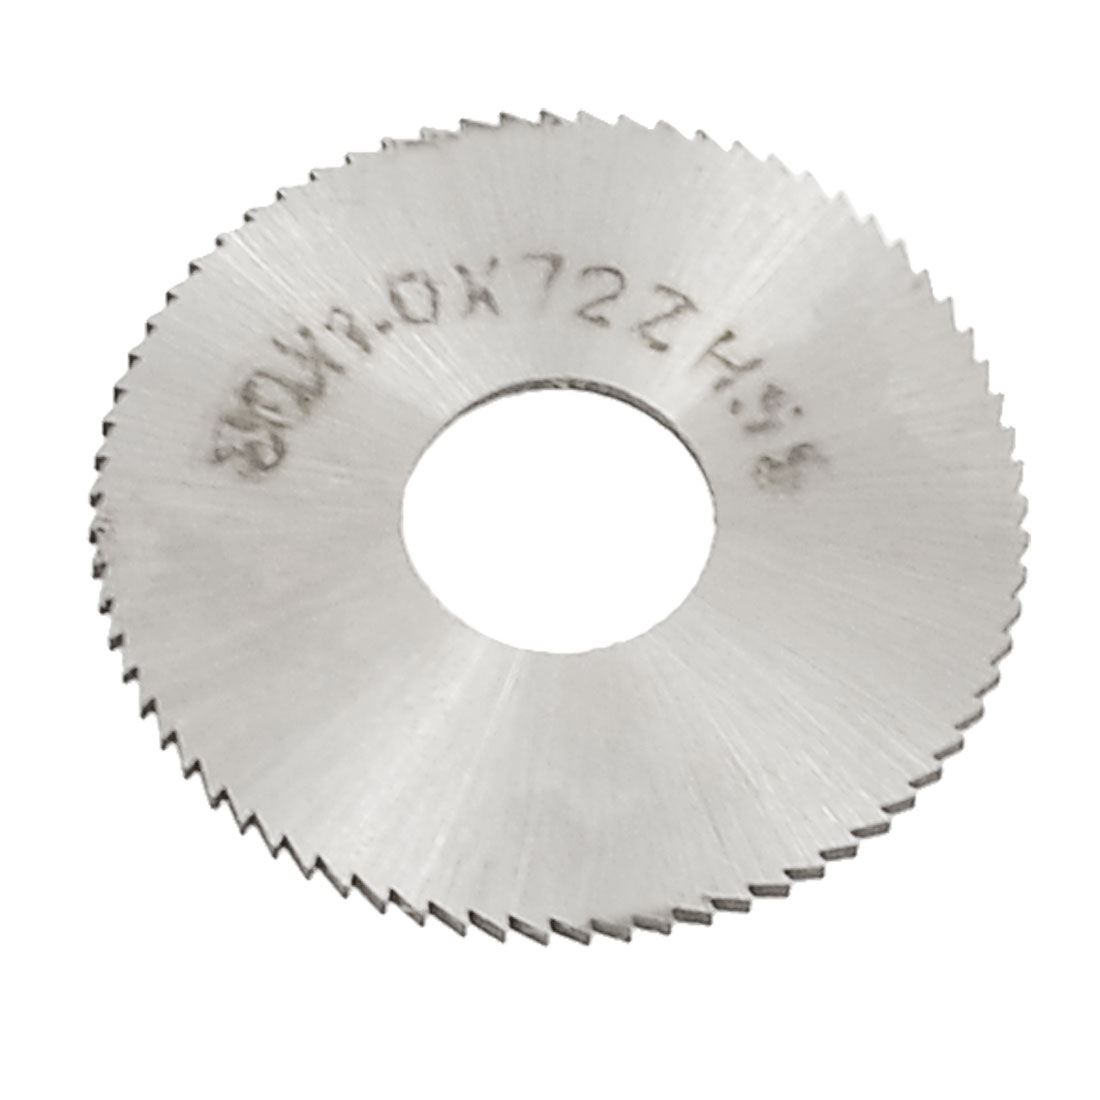 HSS 10mm Hole Dia Toothed 30mm x 1mm 72T Circle Slitting Saw